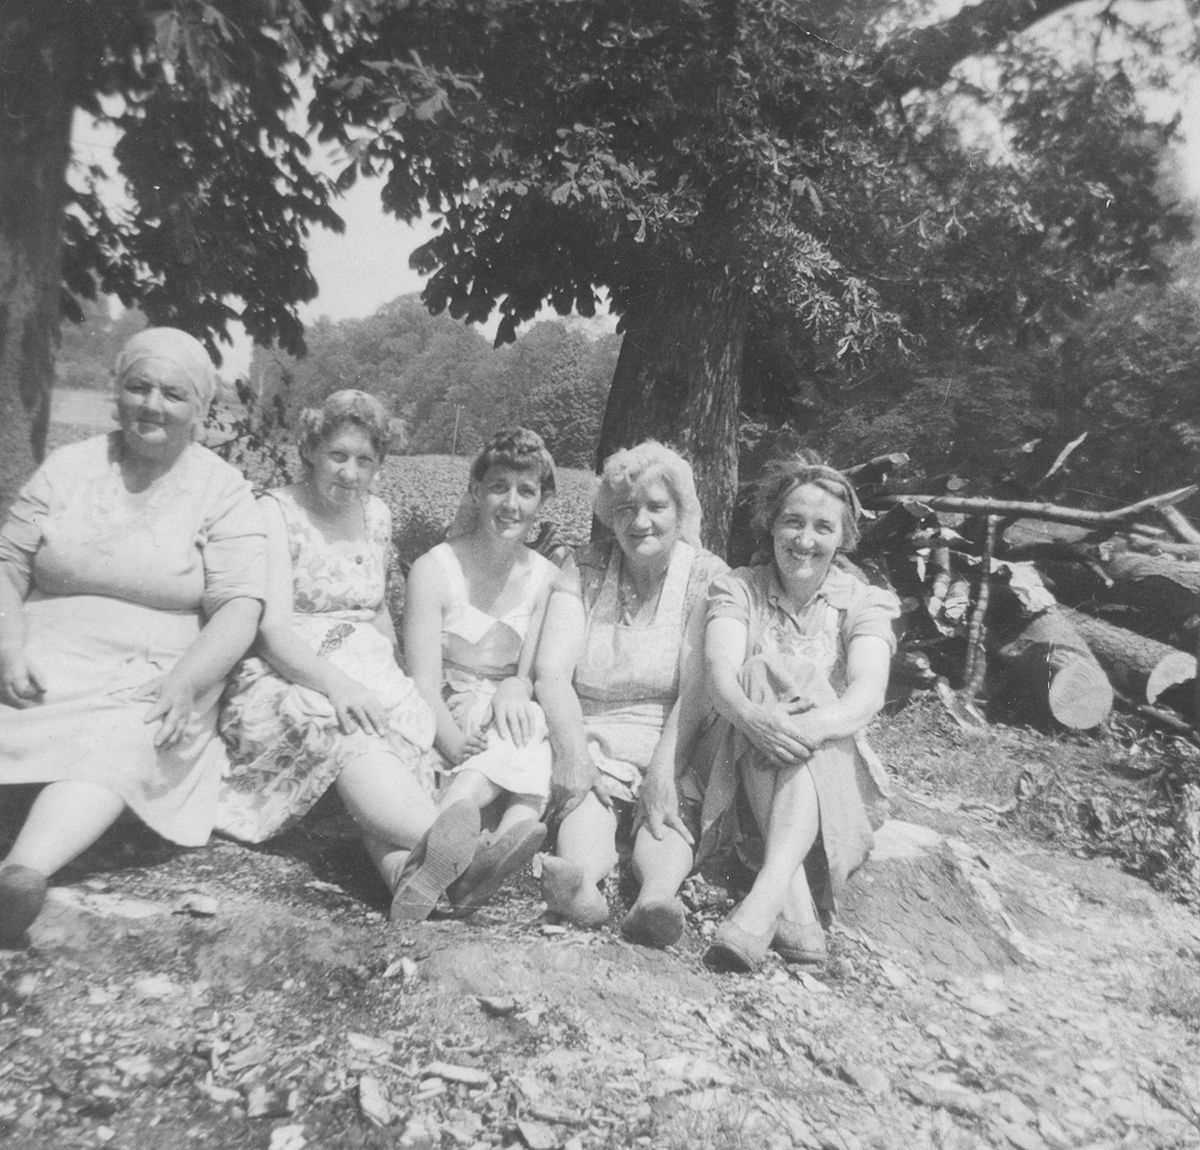 These ladies were having a well earned break from potato picking at Mr Griffiths' Farm, near Norton, between Bridgnorth and Telford, some time in the 1960s. From left, Mrs Owen, Mrs Rickers, Mrs Preece, Mrs Clarke, and Mrs Tranter, all from Madeley.